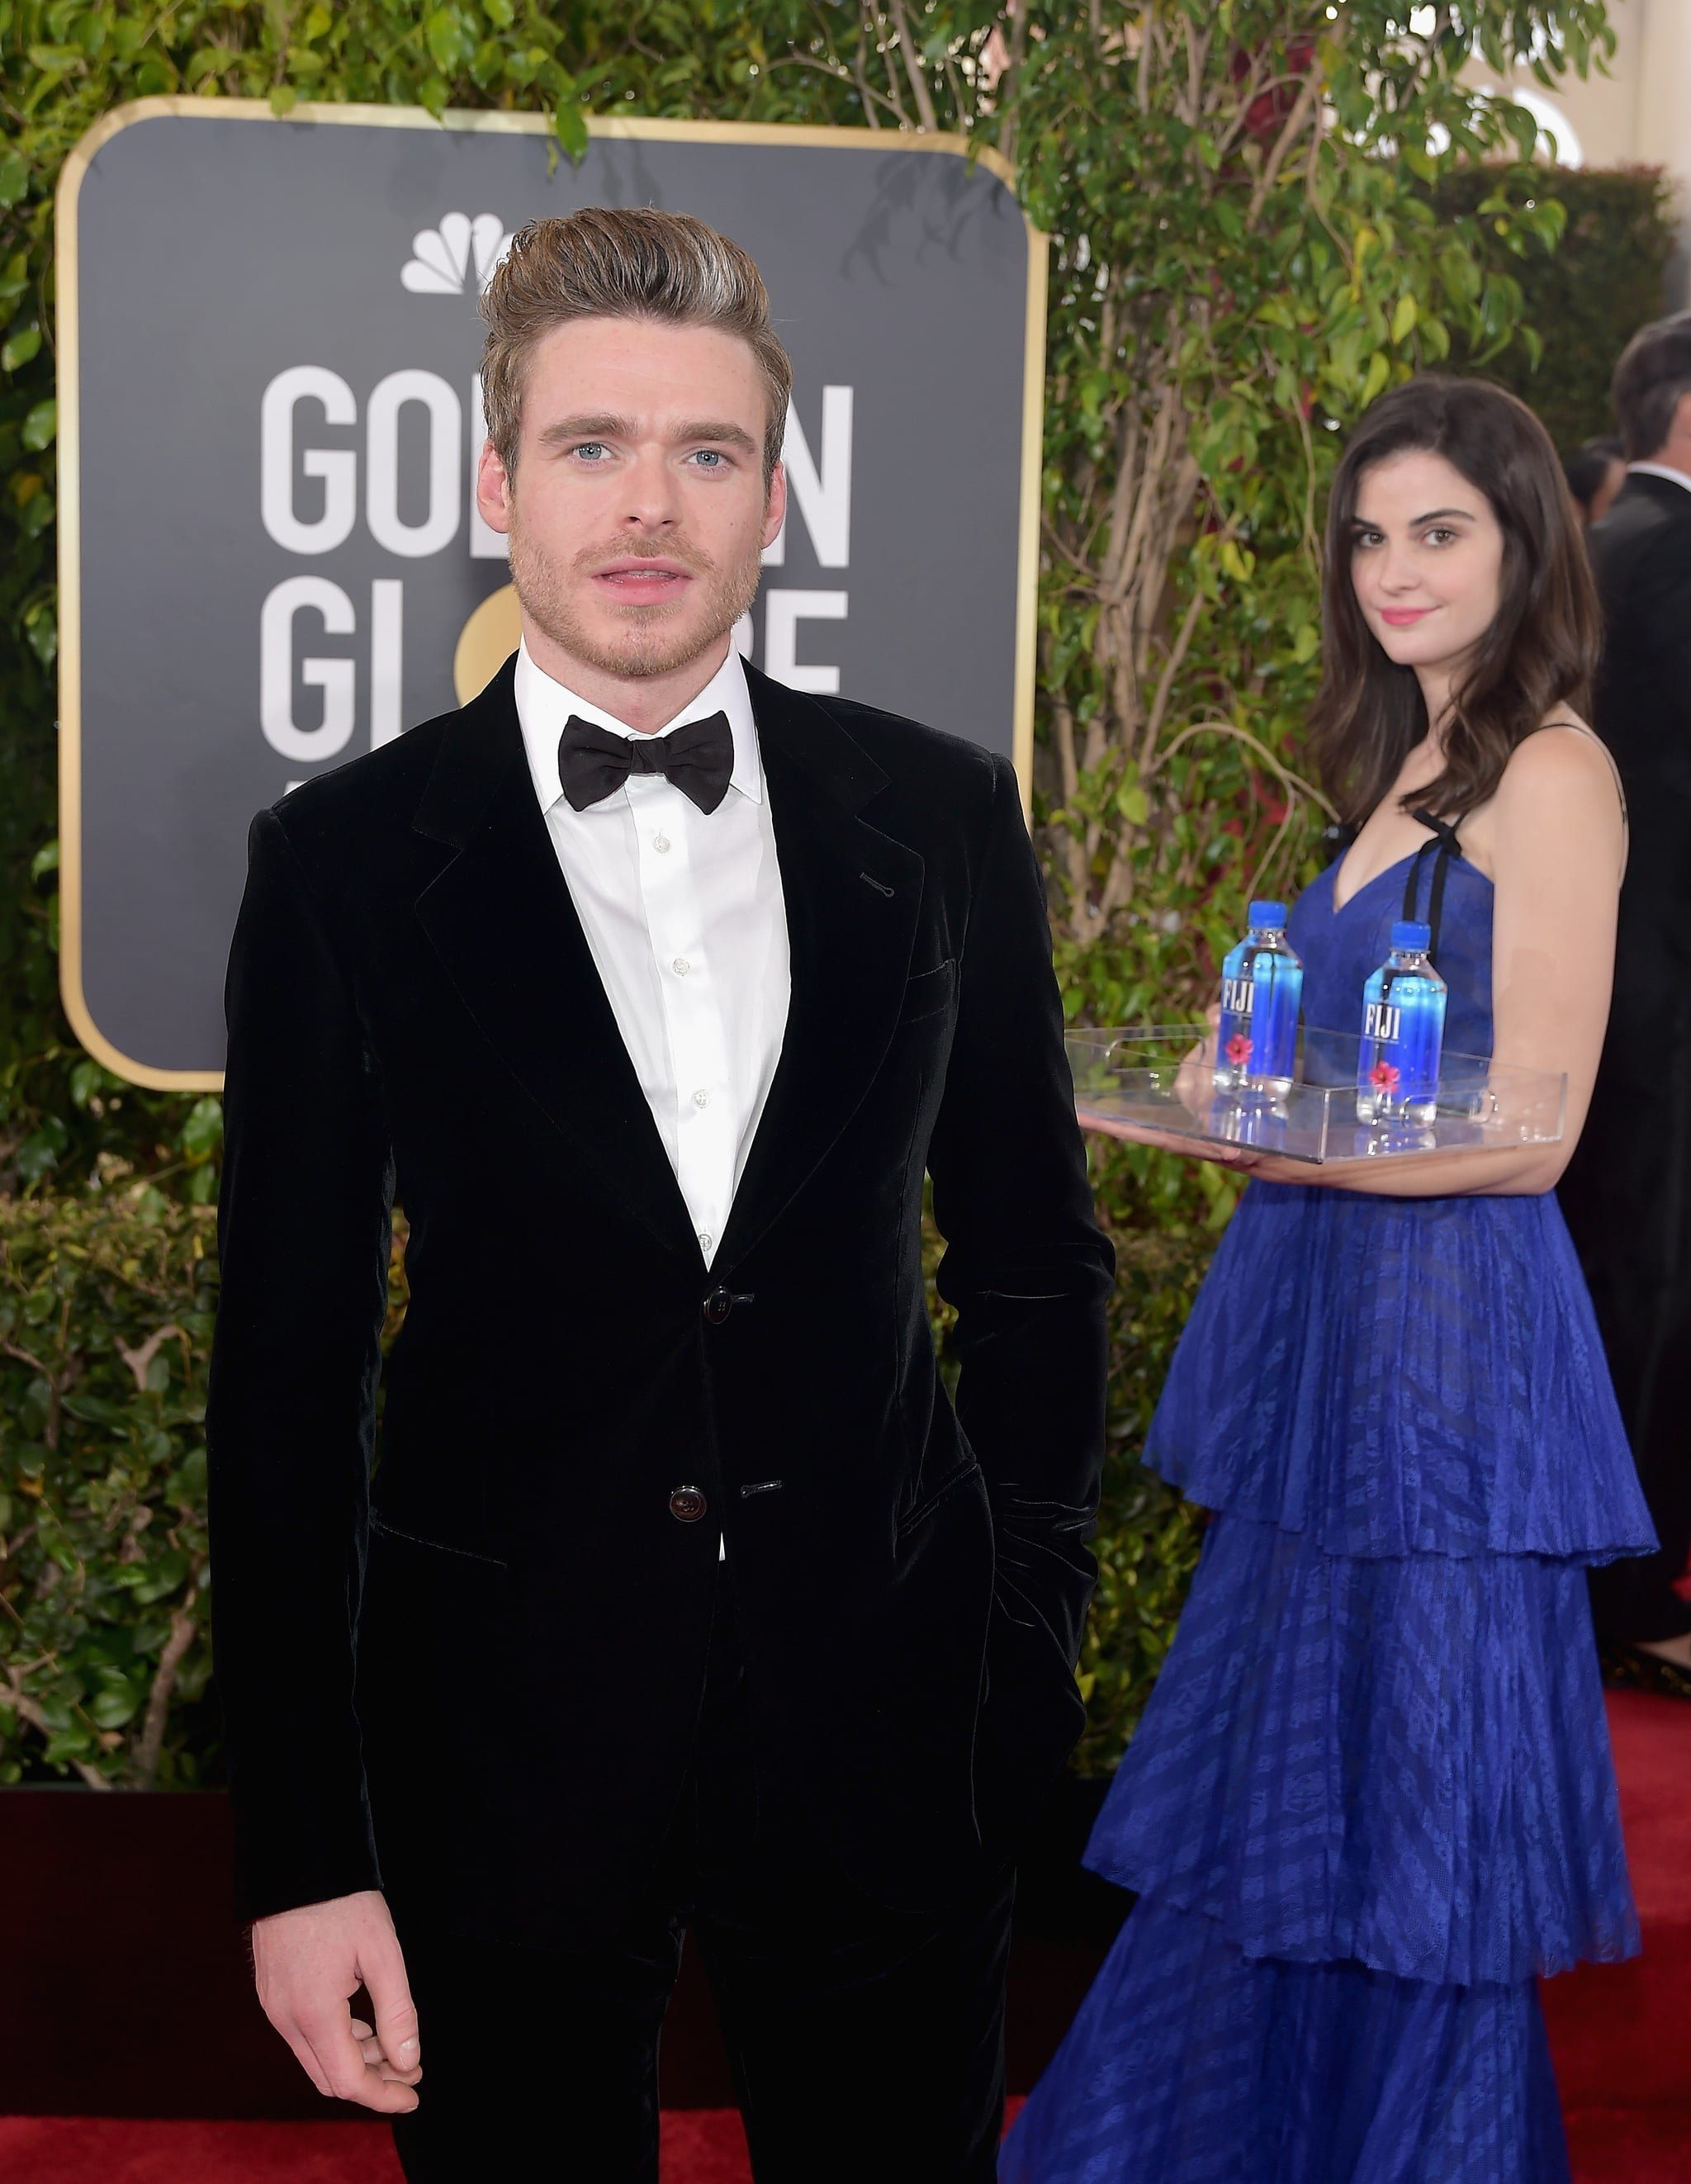 "<p>Related: <a rel=""nofollow"" href=""https://www.popsugar.com/celebrity/Girl-Posing-Fiji-Water-2019-Golden-Globes-Red-Carpet-45646669?utm_medium=partner_feed&utm_source=yahoo_publisher&utm_campaign=related%20link"">In 2019, I Want to Serve Looks as Hard as This Girl Photobombing at the Golden Globes</a></p>"